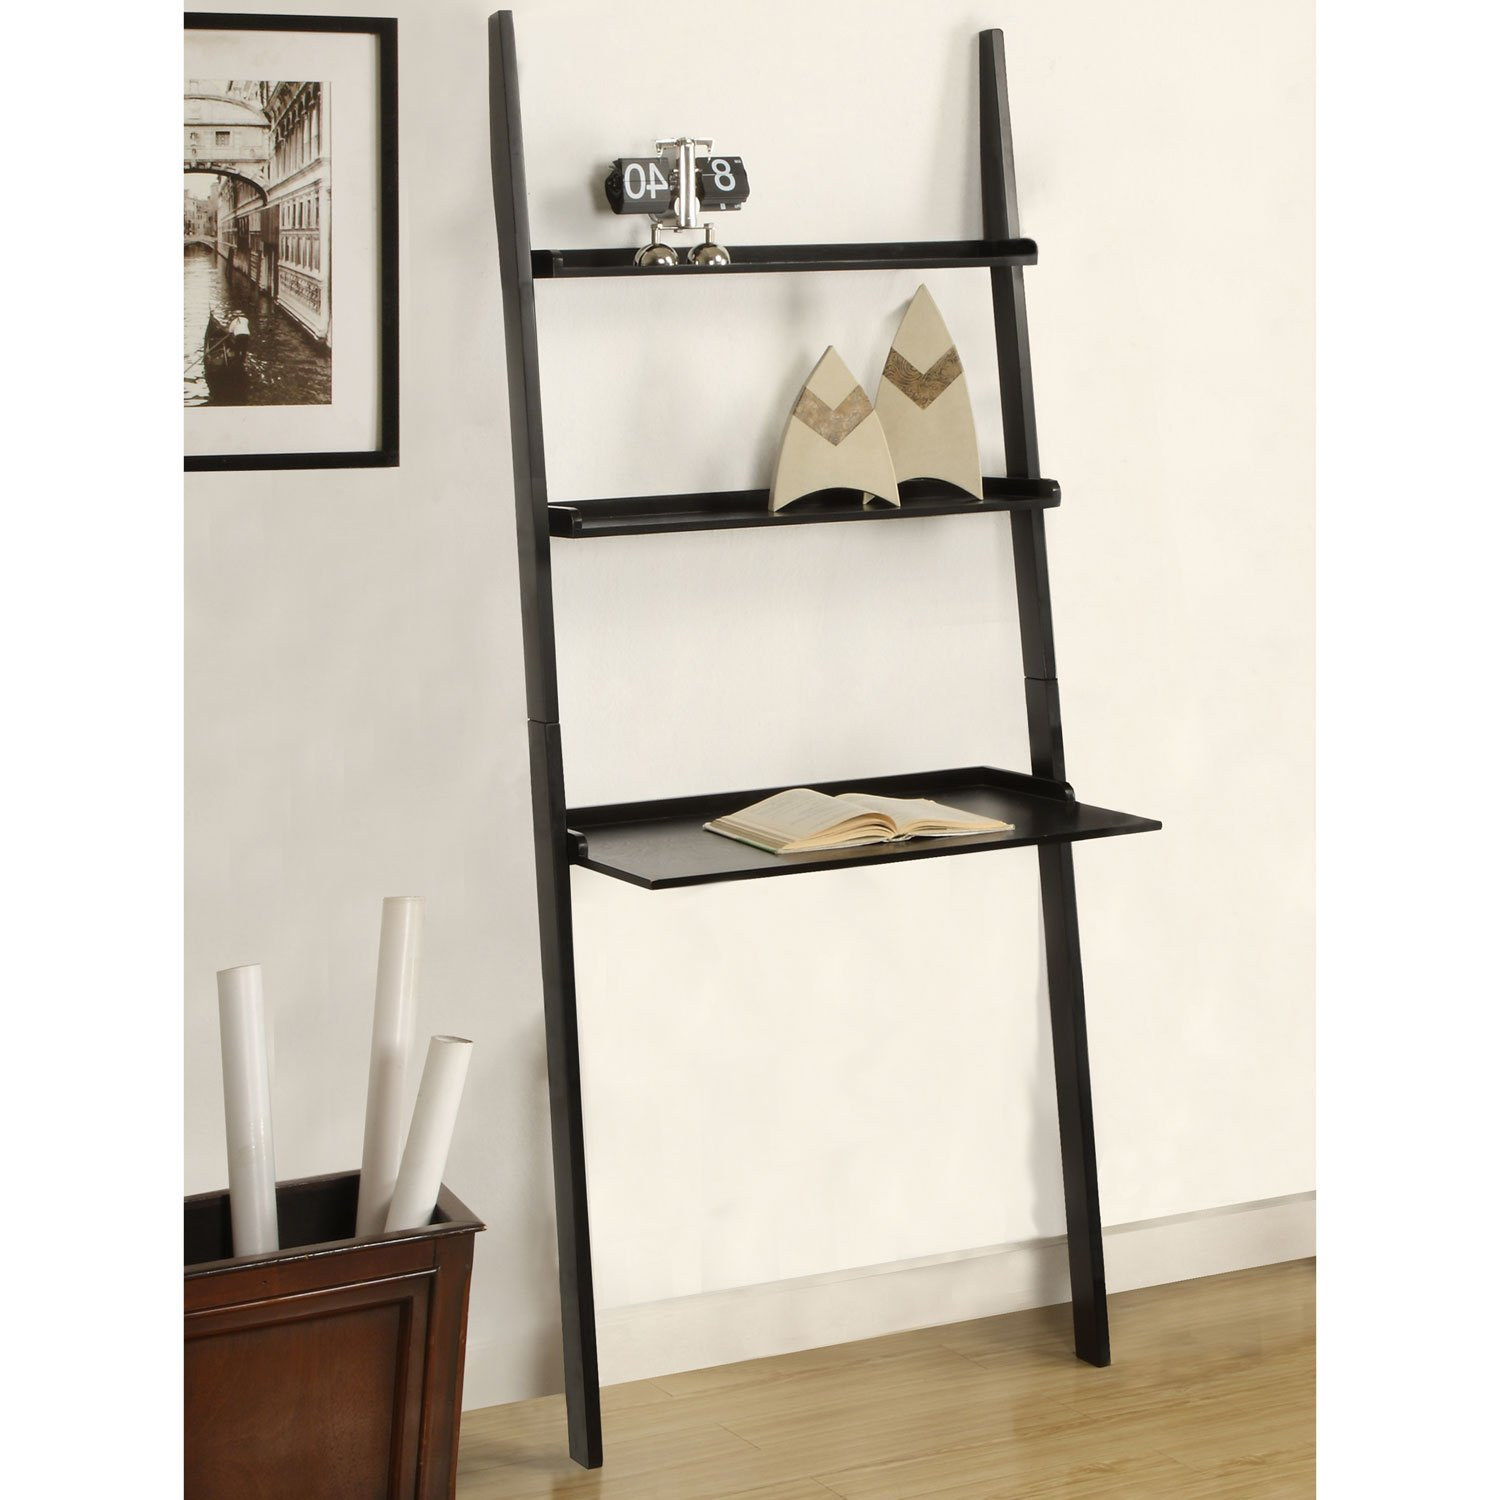 Ikea Study Desk Ladder Desk Ikea: Simple Solution For Workstation As Well